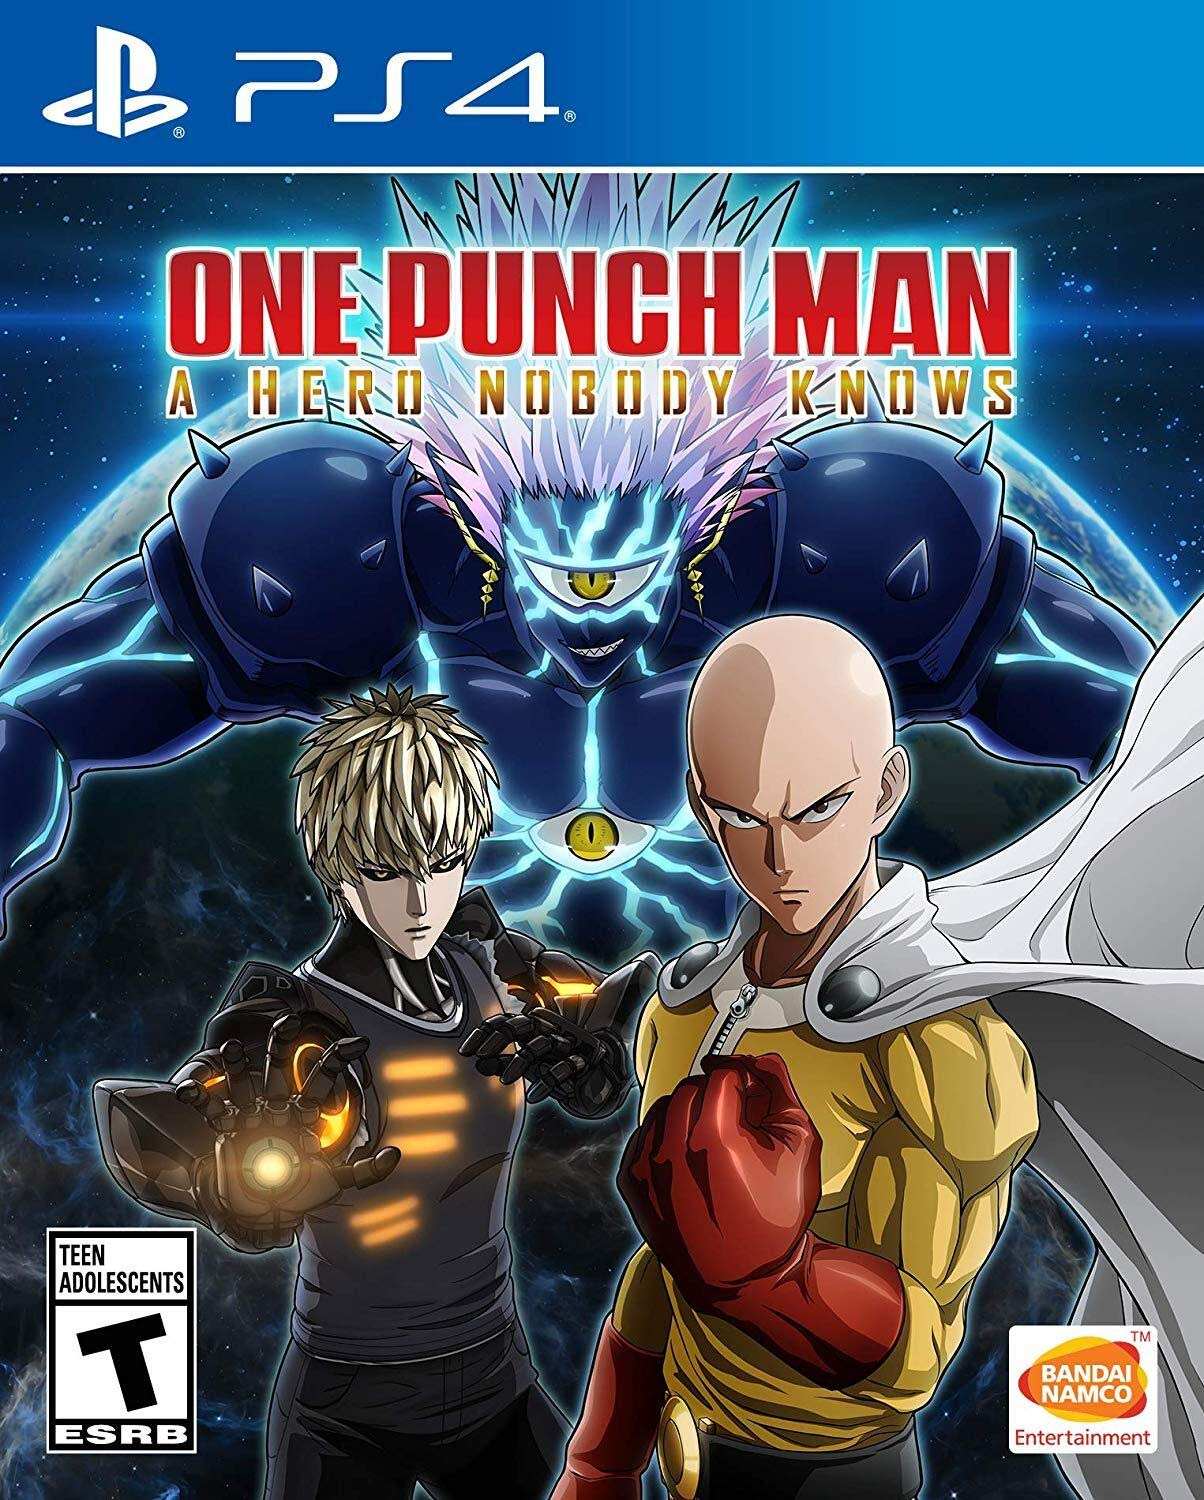 Amazon.com: One Punch Man: A Hero Nobody Knows Deluxe - PC [Online Game  Code]: Video Games